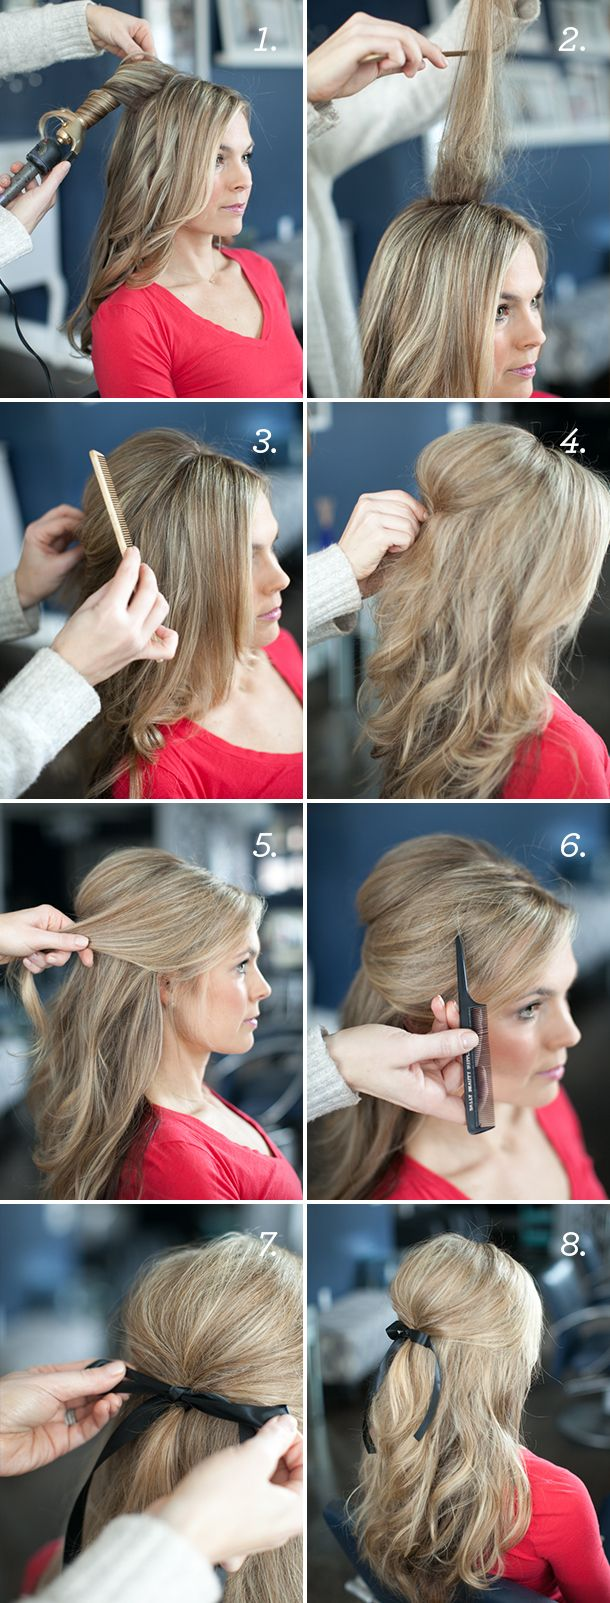 Ribbon Half Updo Tutorial by Martha Lynn Kale | photo by Kate Stafford for Camil...